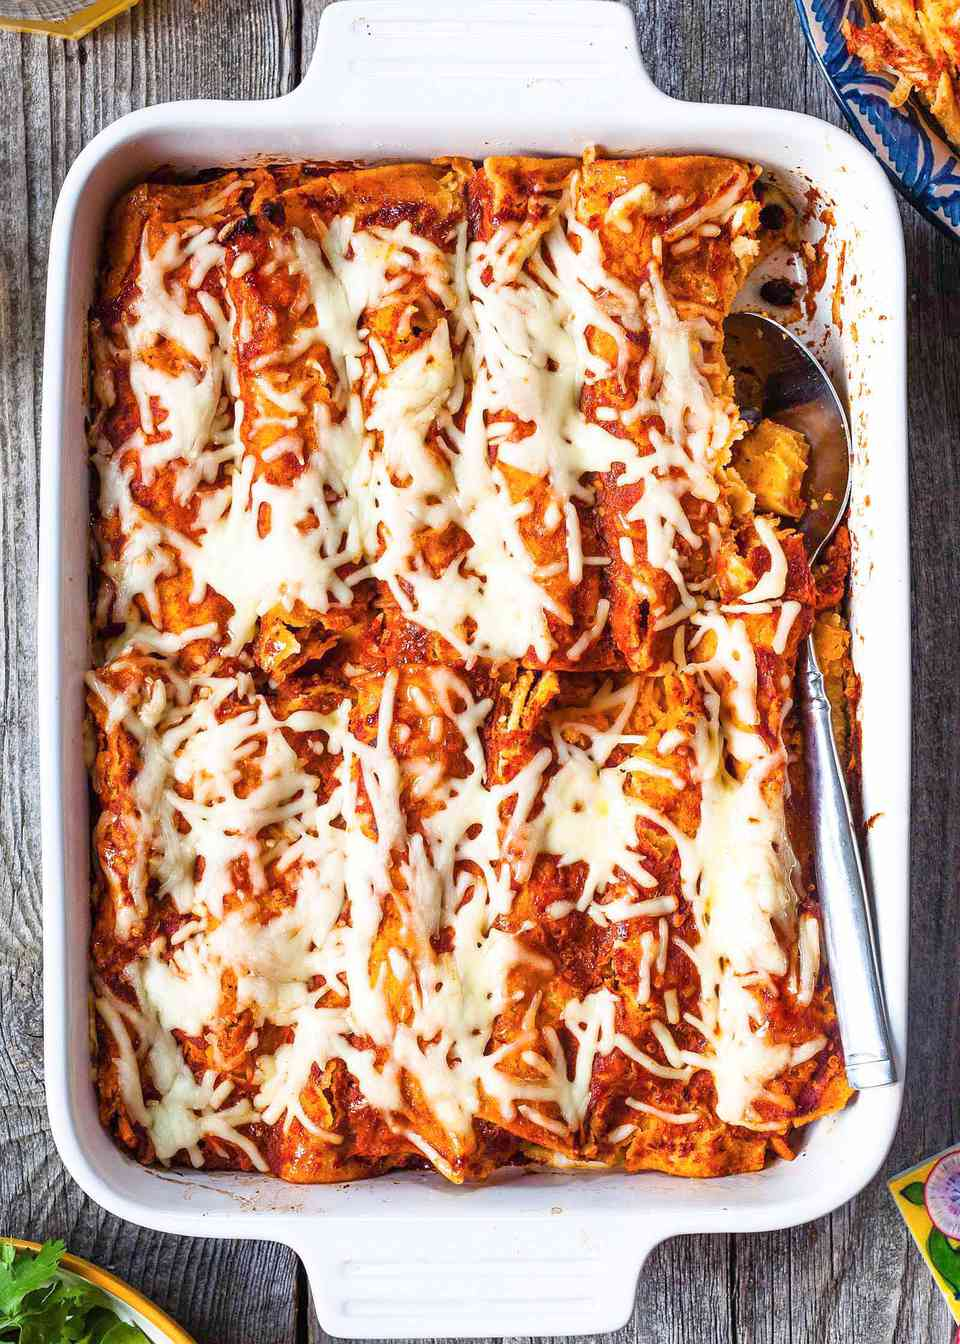 Casserole dish filled with homemade vegetairan enchiladas fillled iwth butternut squash and topped with cheese